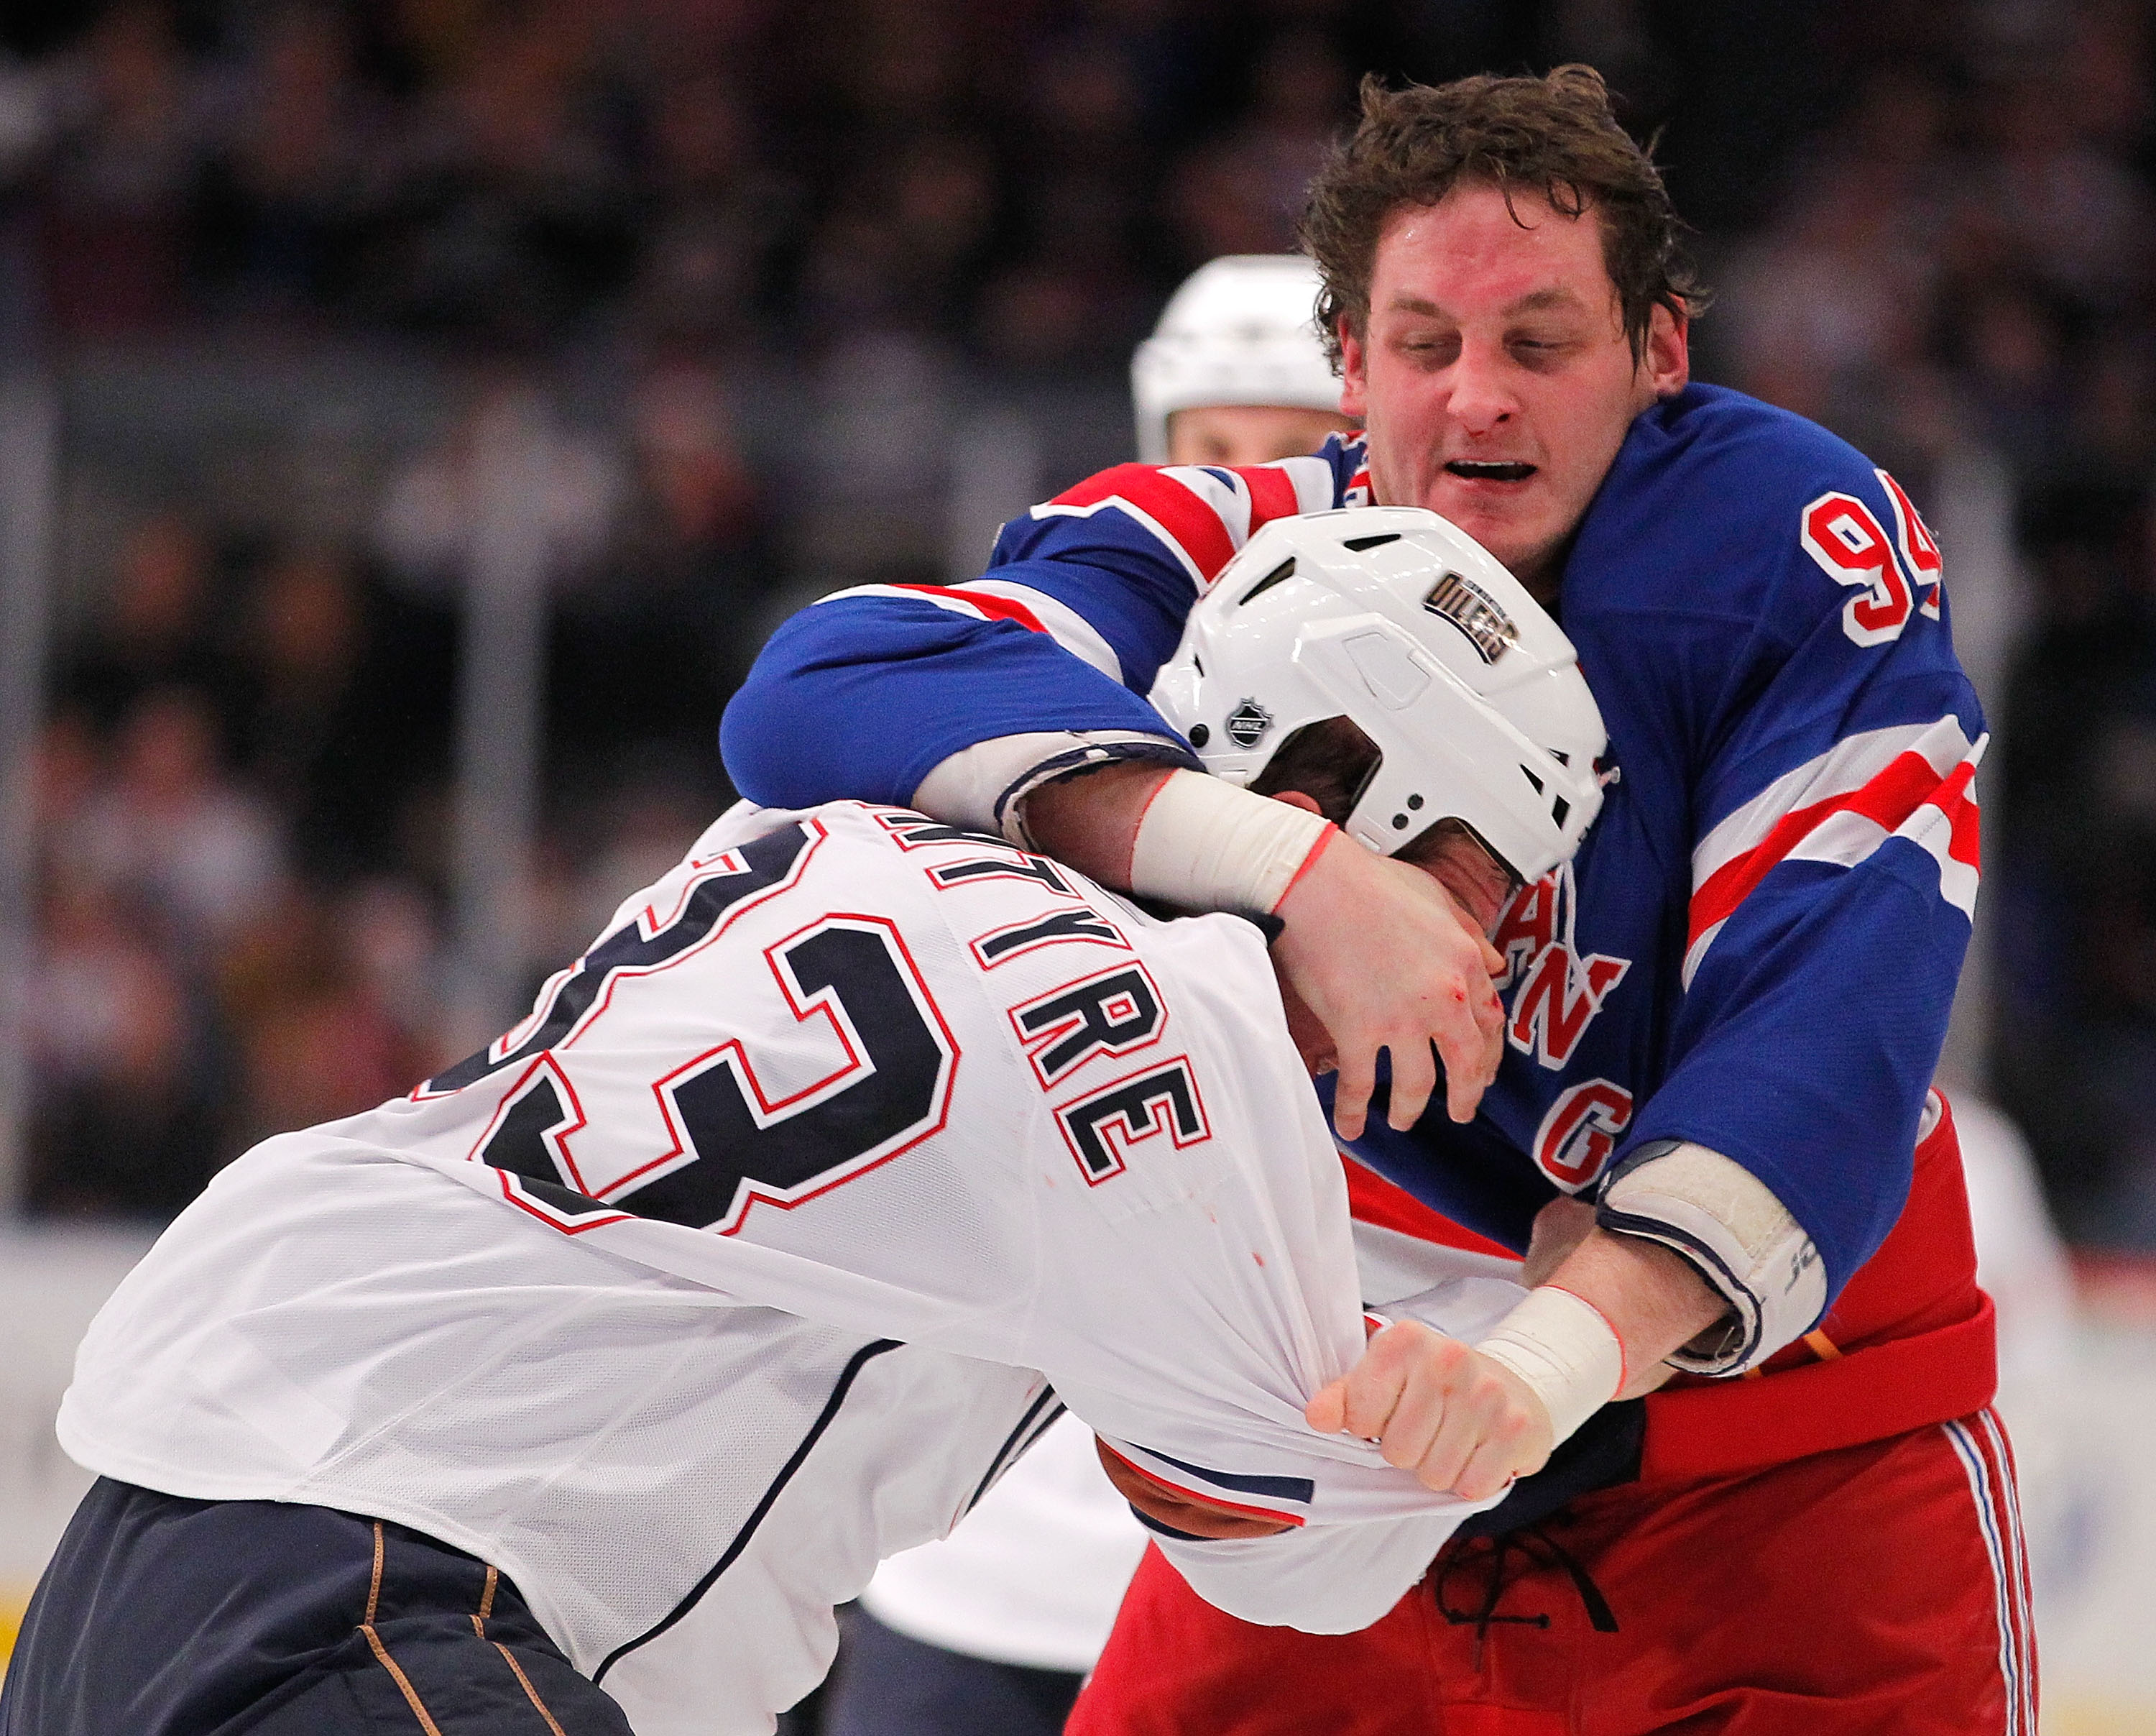 NEW YORK - NOVEMBER 14:  Steve MacIntyre #33 of the Edmonton Oilers fighting with Derek Boogaard #94 of the New York Rangers during a hockey game at Madison Square Garden on November 14, 2010 in New York City.  (Photo by Paul Bereswill/Getty Images)